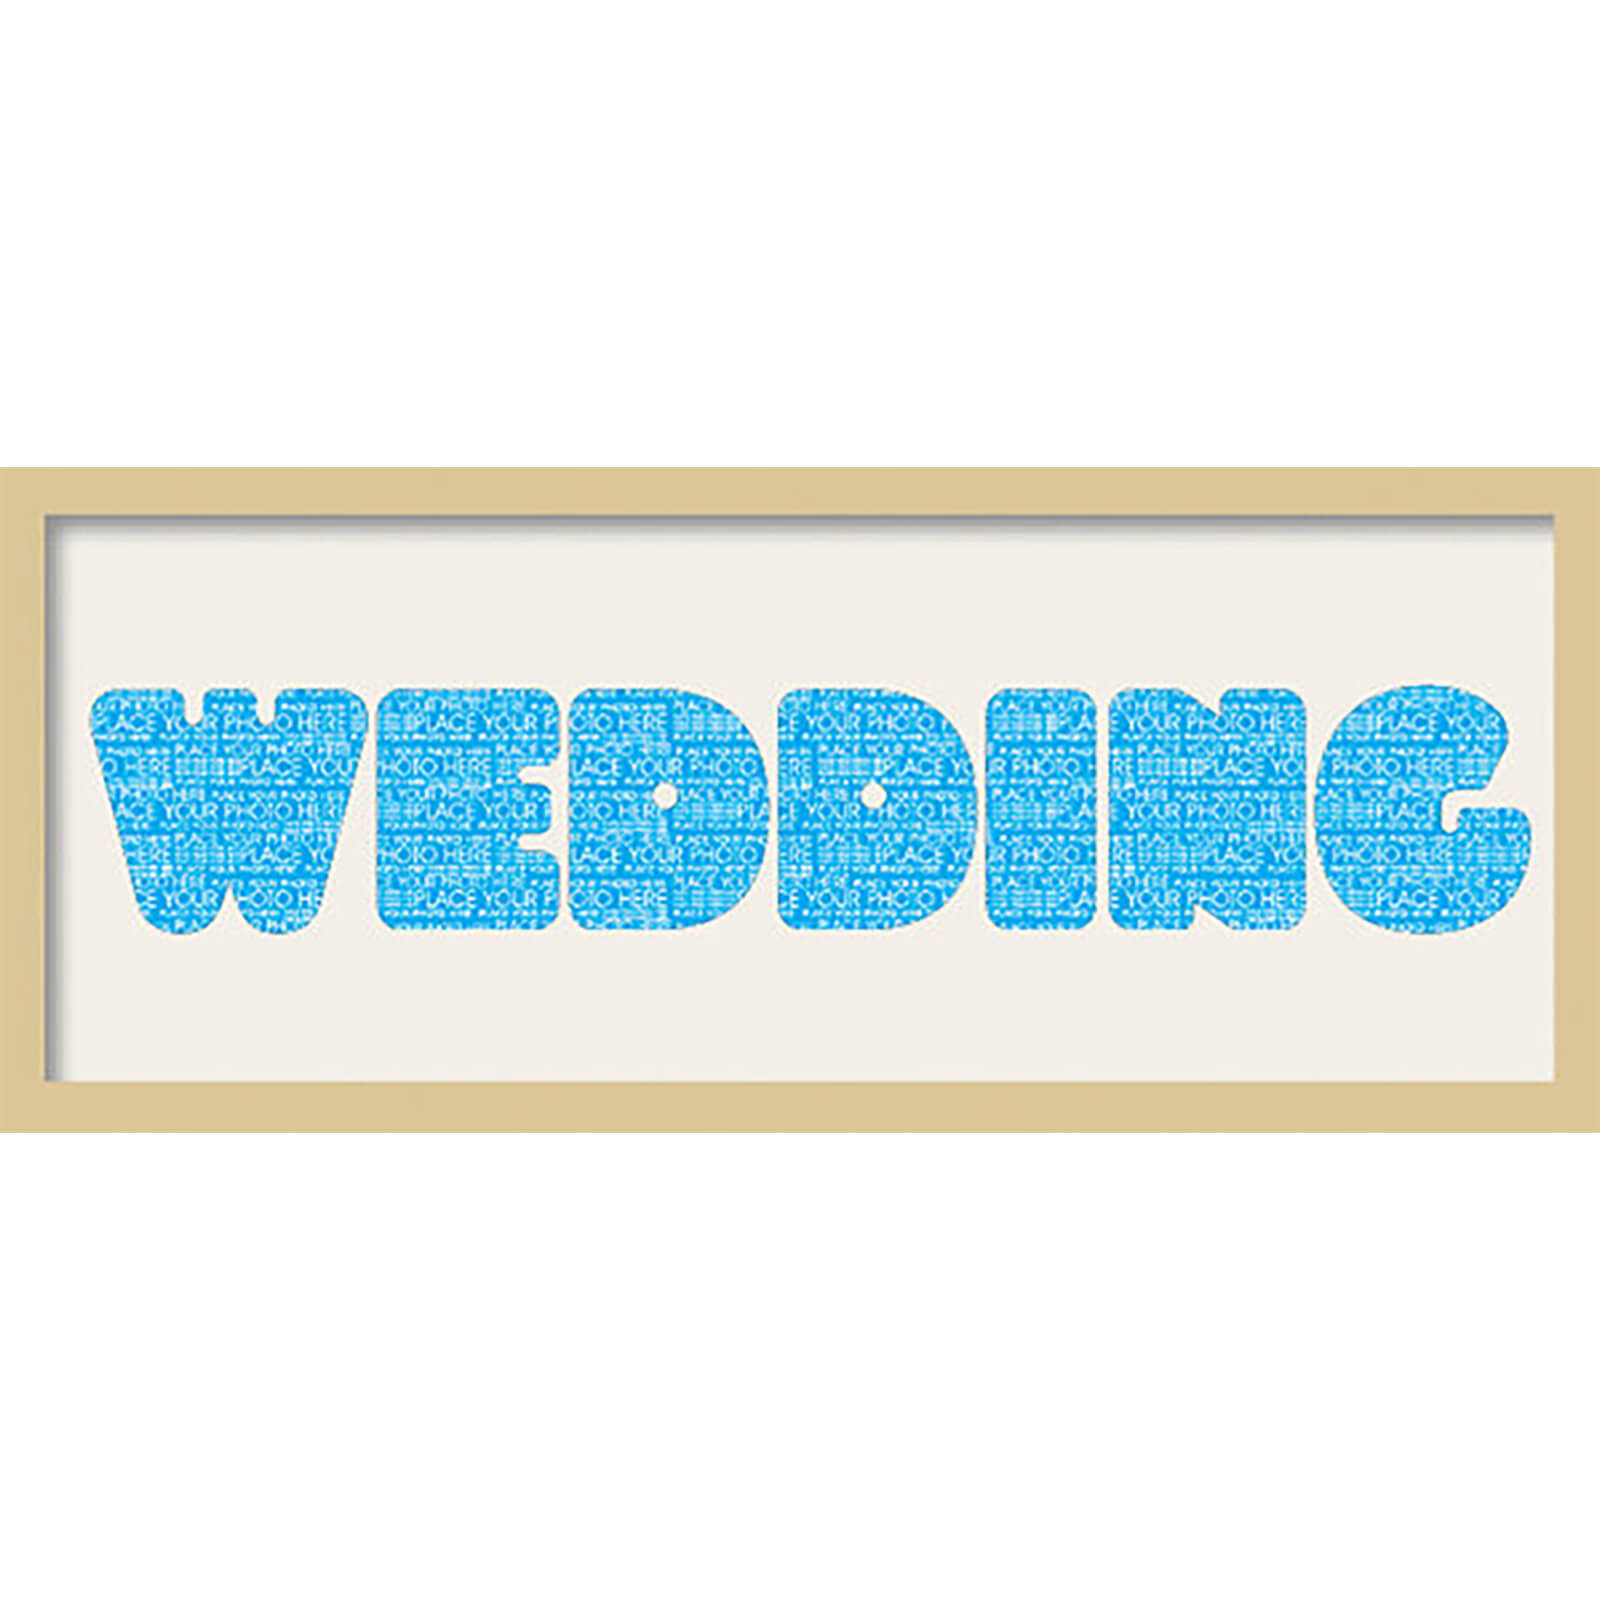 "GB Cream Mount Wedding Fatty Font - Framed Mount - 12"""" x 30"""